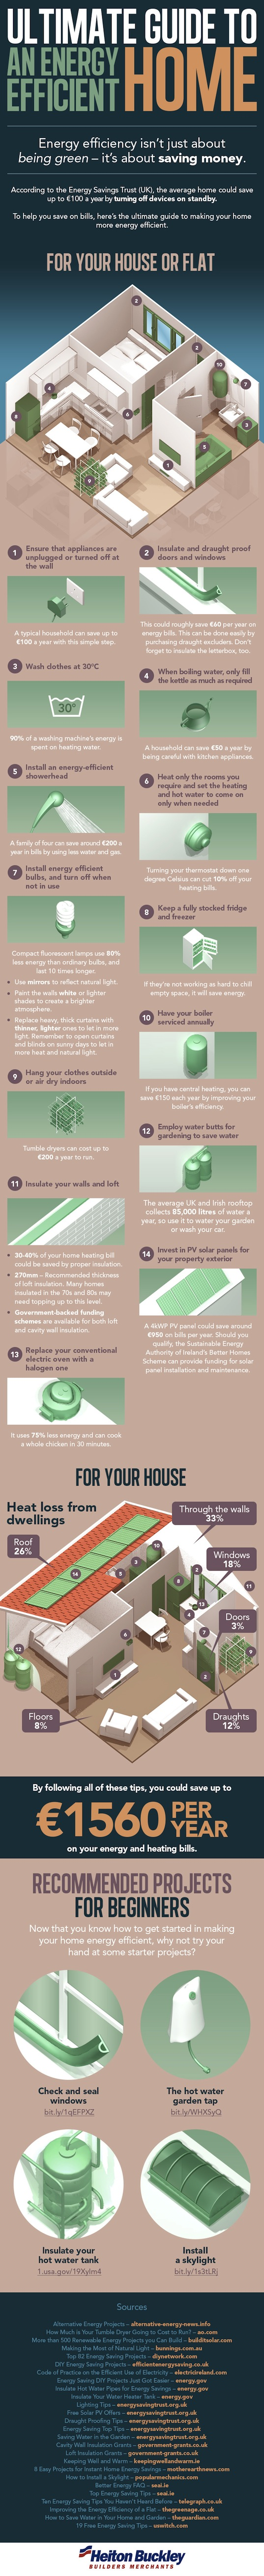 Heiton Buckley, infographic, heating bills, energy bills, save on energy, energy efficiency, energy efficient home, reader submitted content